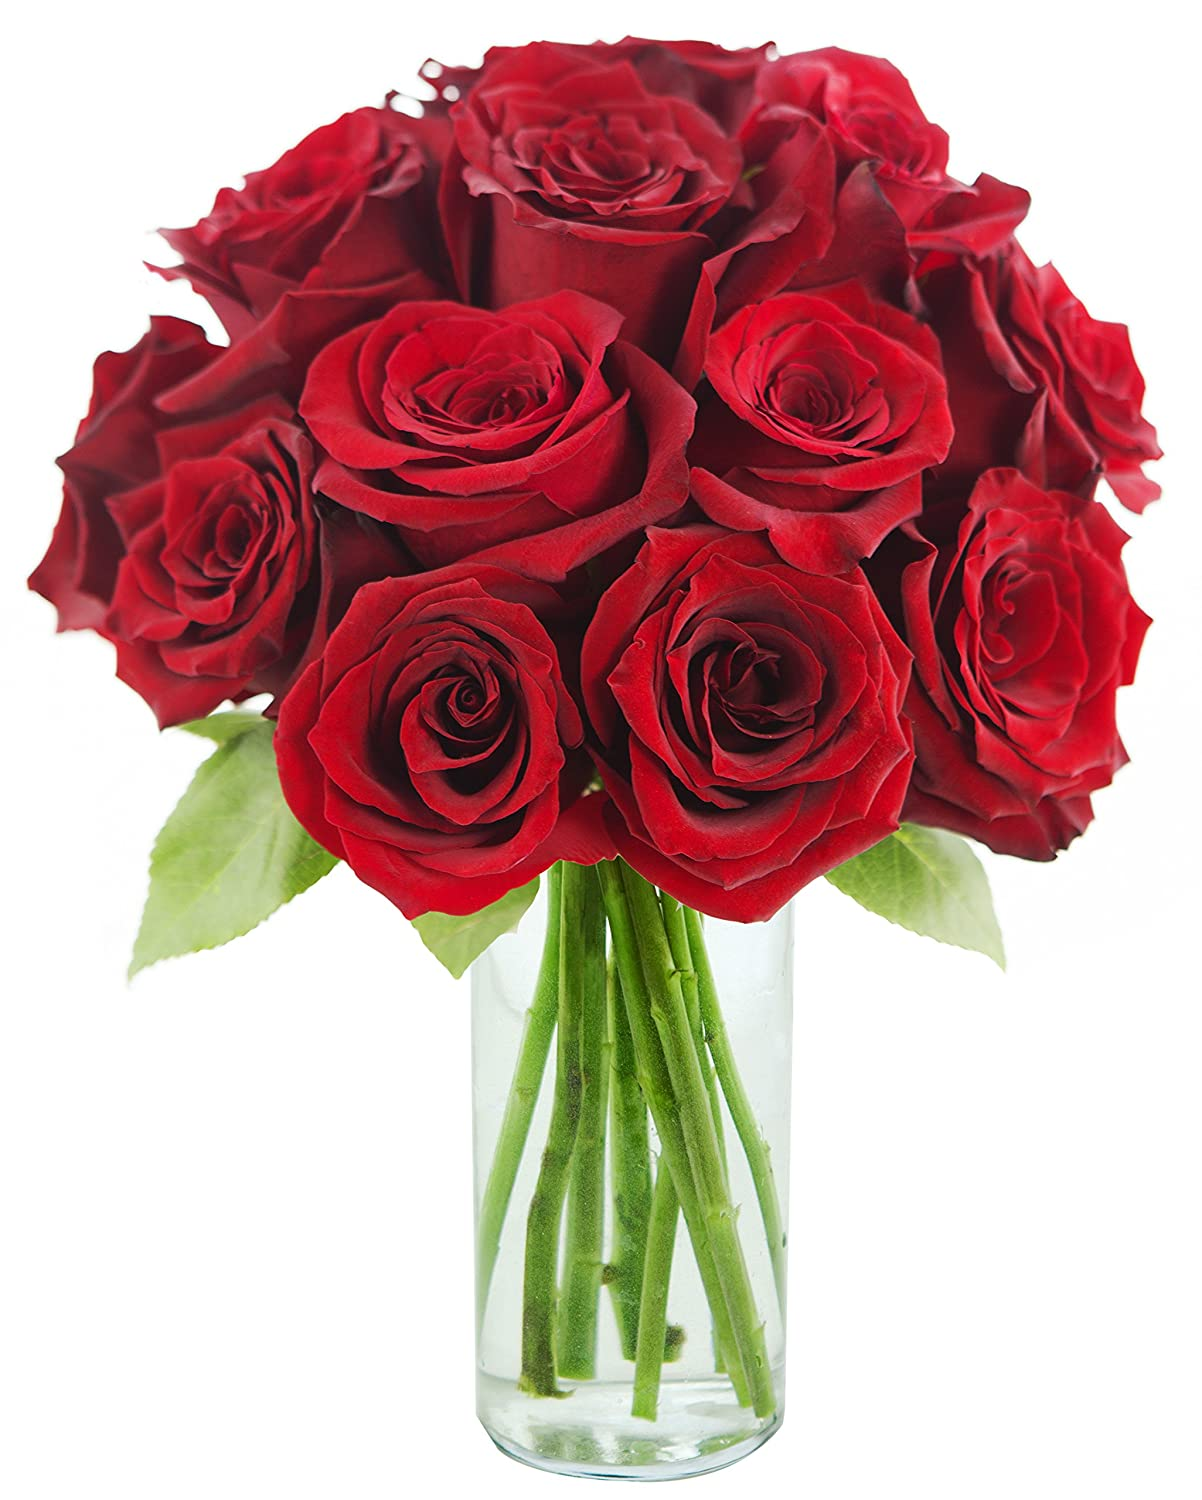 Amazon Romantic Red Rose Bouquet 12 Fresh Cut Roses With Vase